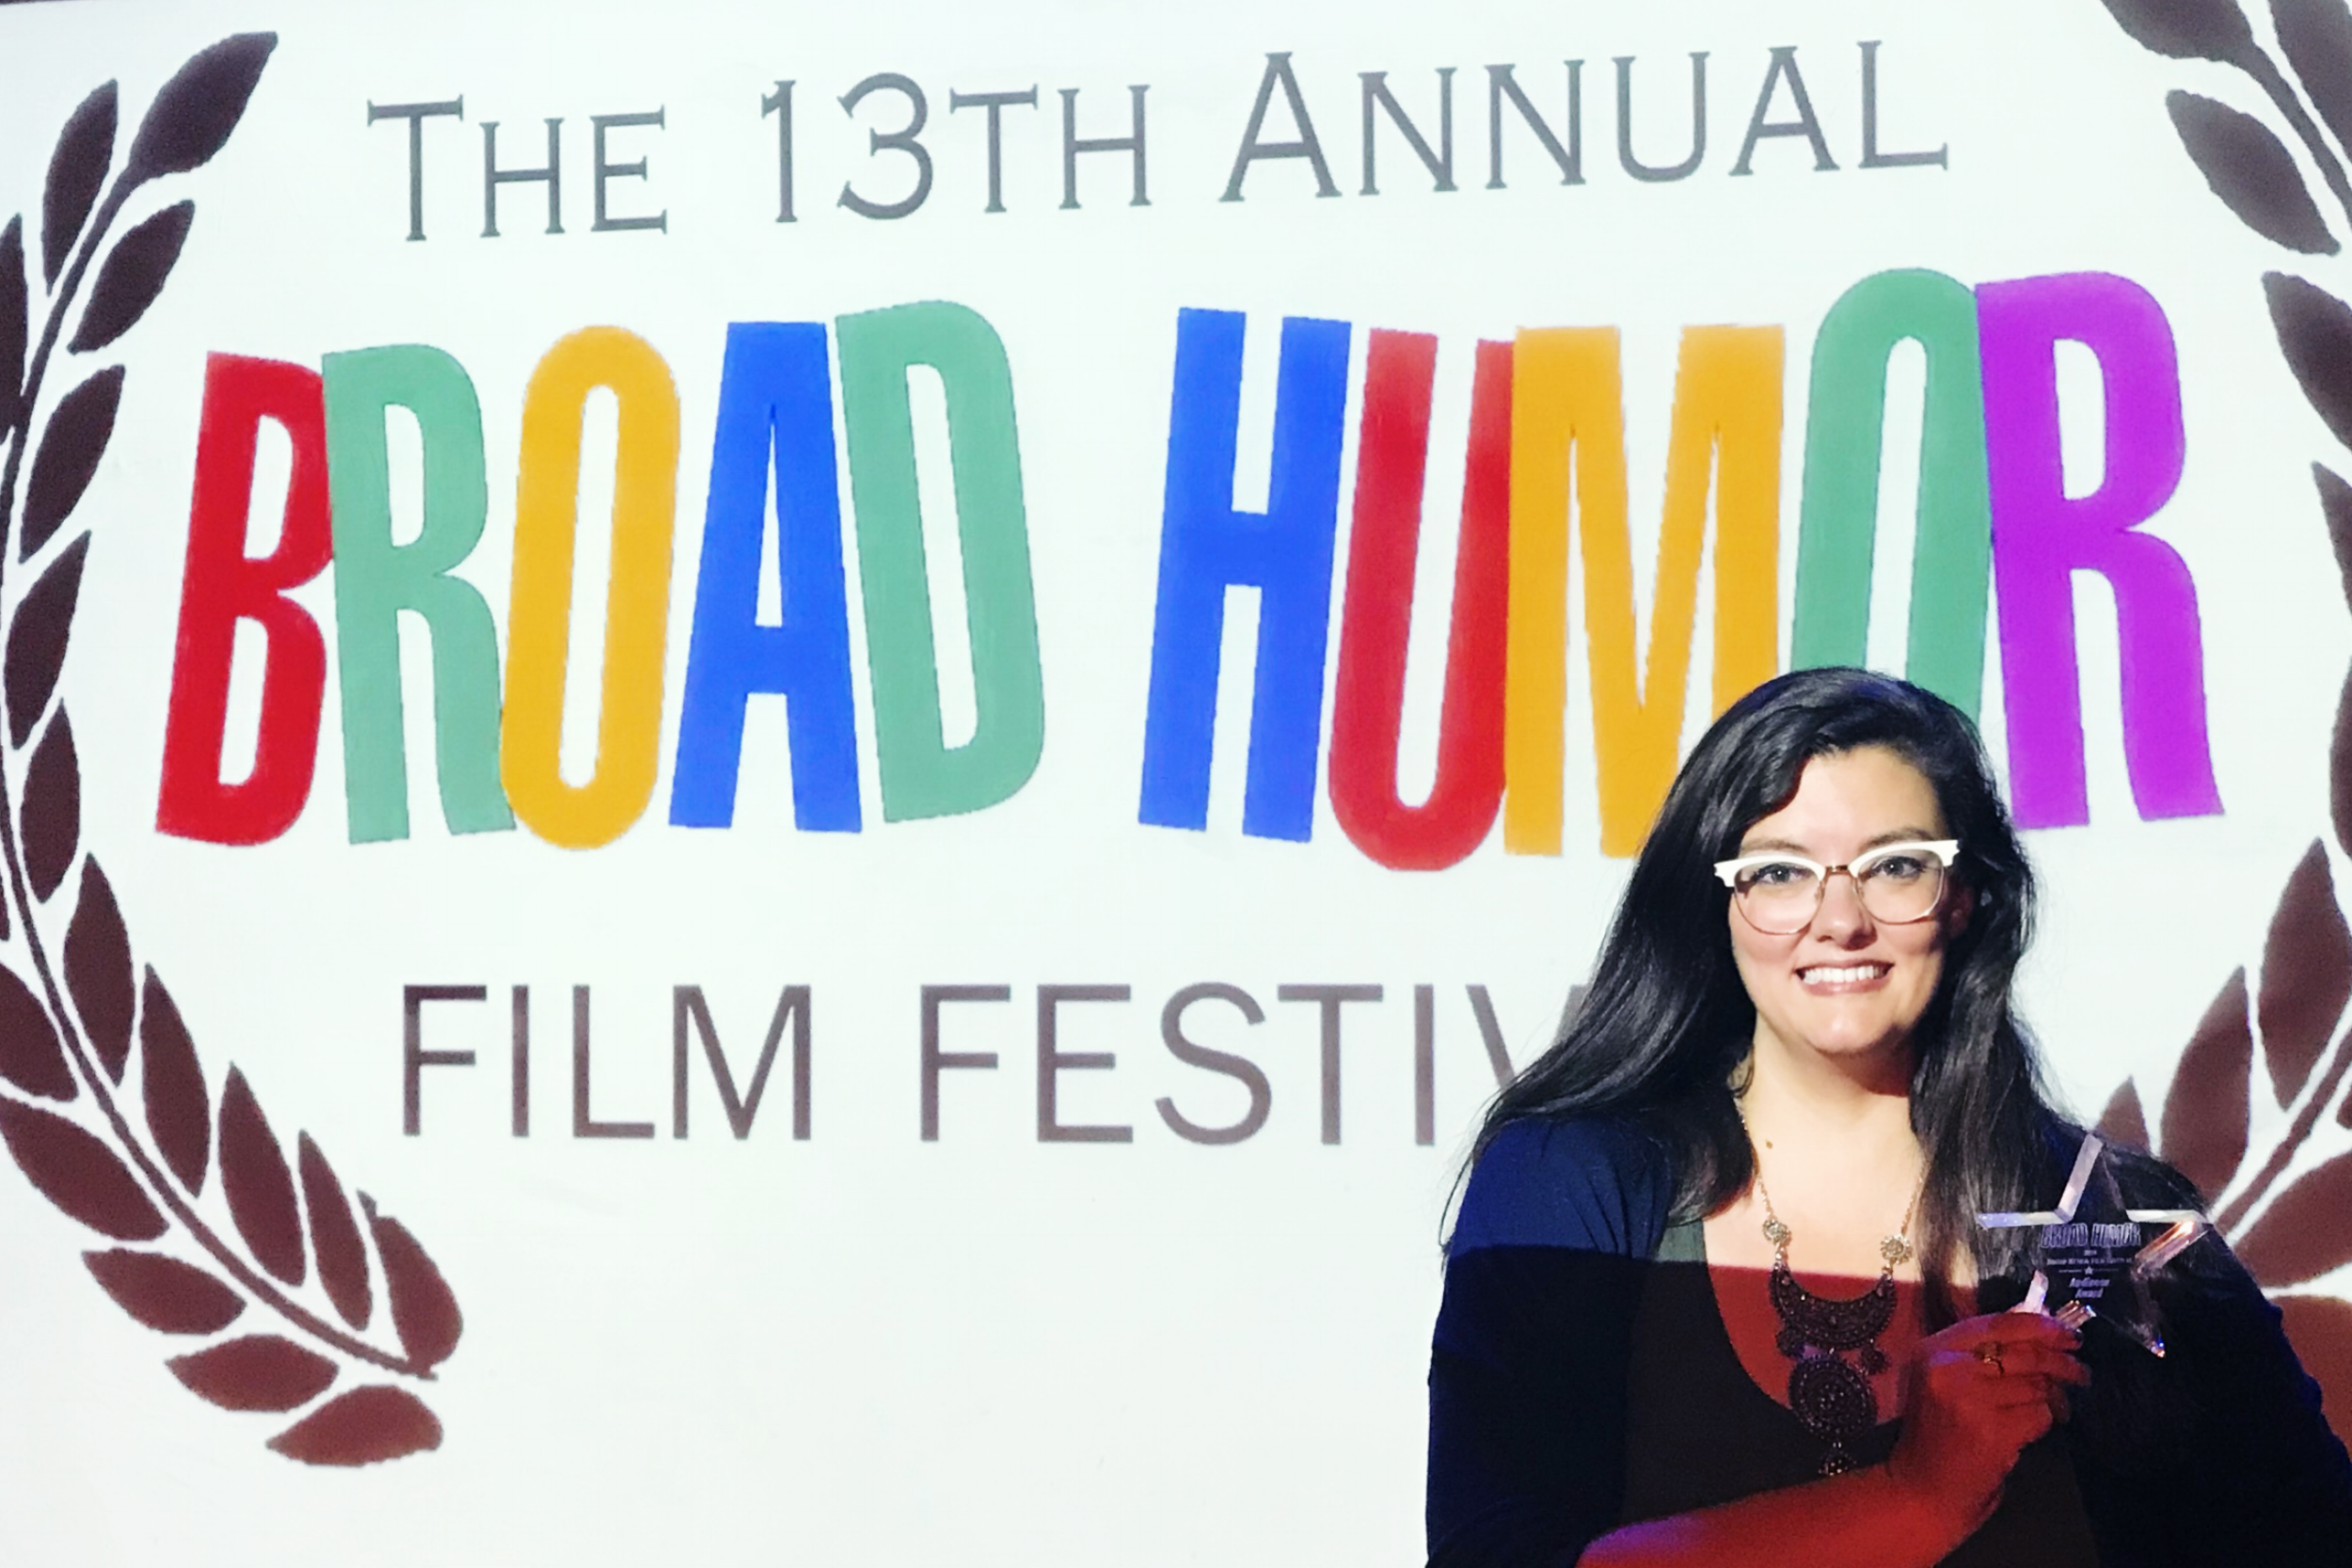 The Moving Picture Institute's vice president of talent development, Lana Link, accepts the Audience Award for MPI original film  Gringa  at the Broad Humor Film Festival.